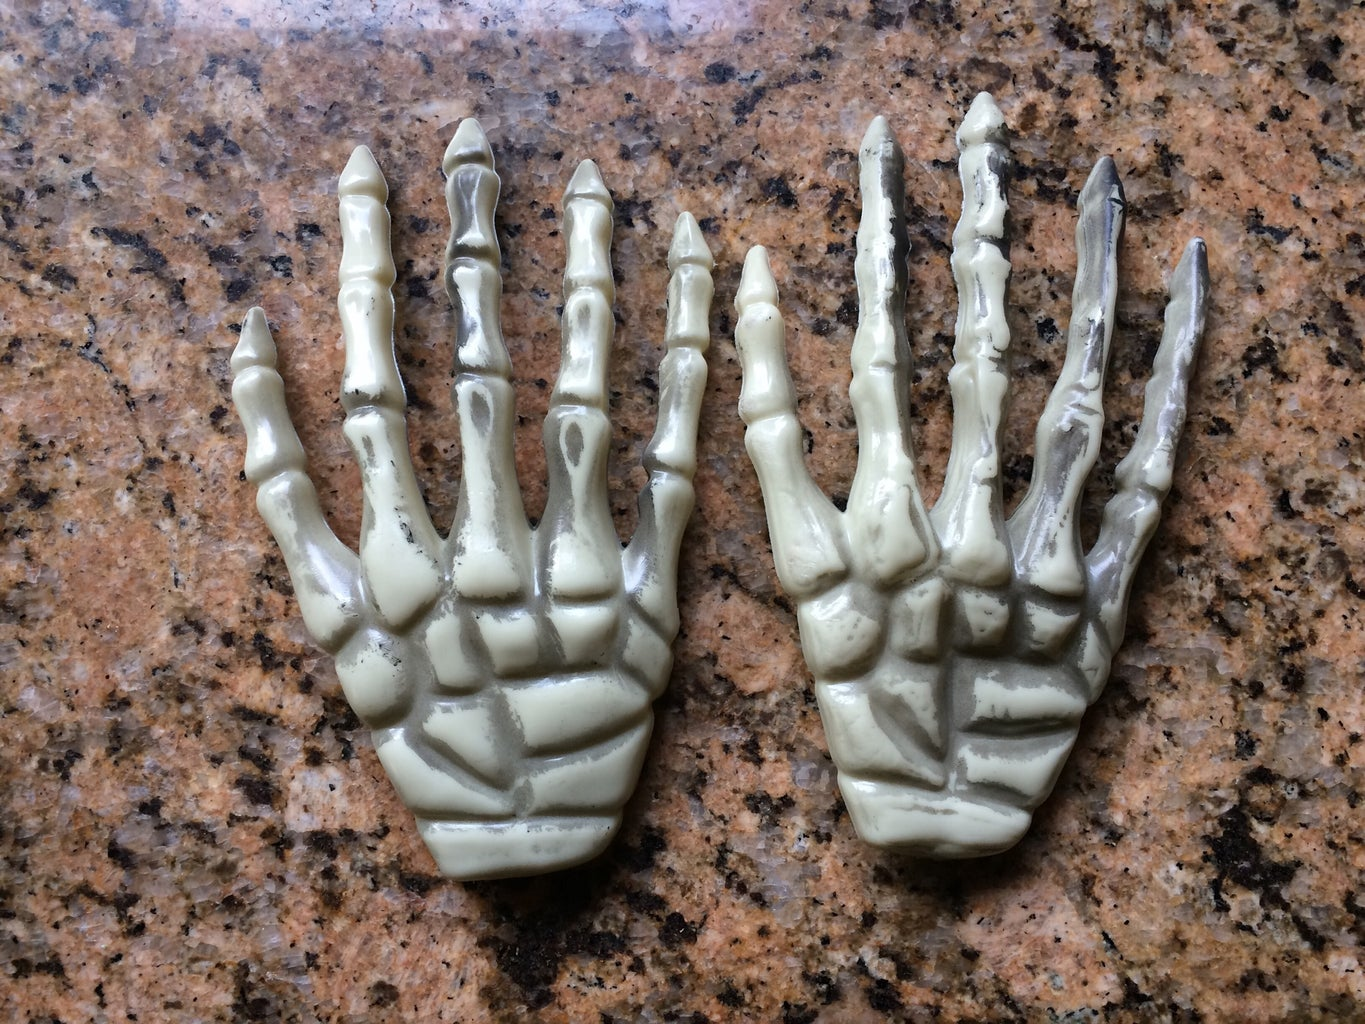 Quick and Spooky: Improving Dollar Store Skeleton Hands With a Heat Gun for Halloween